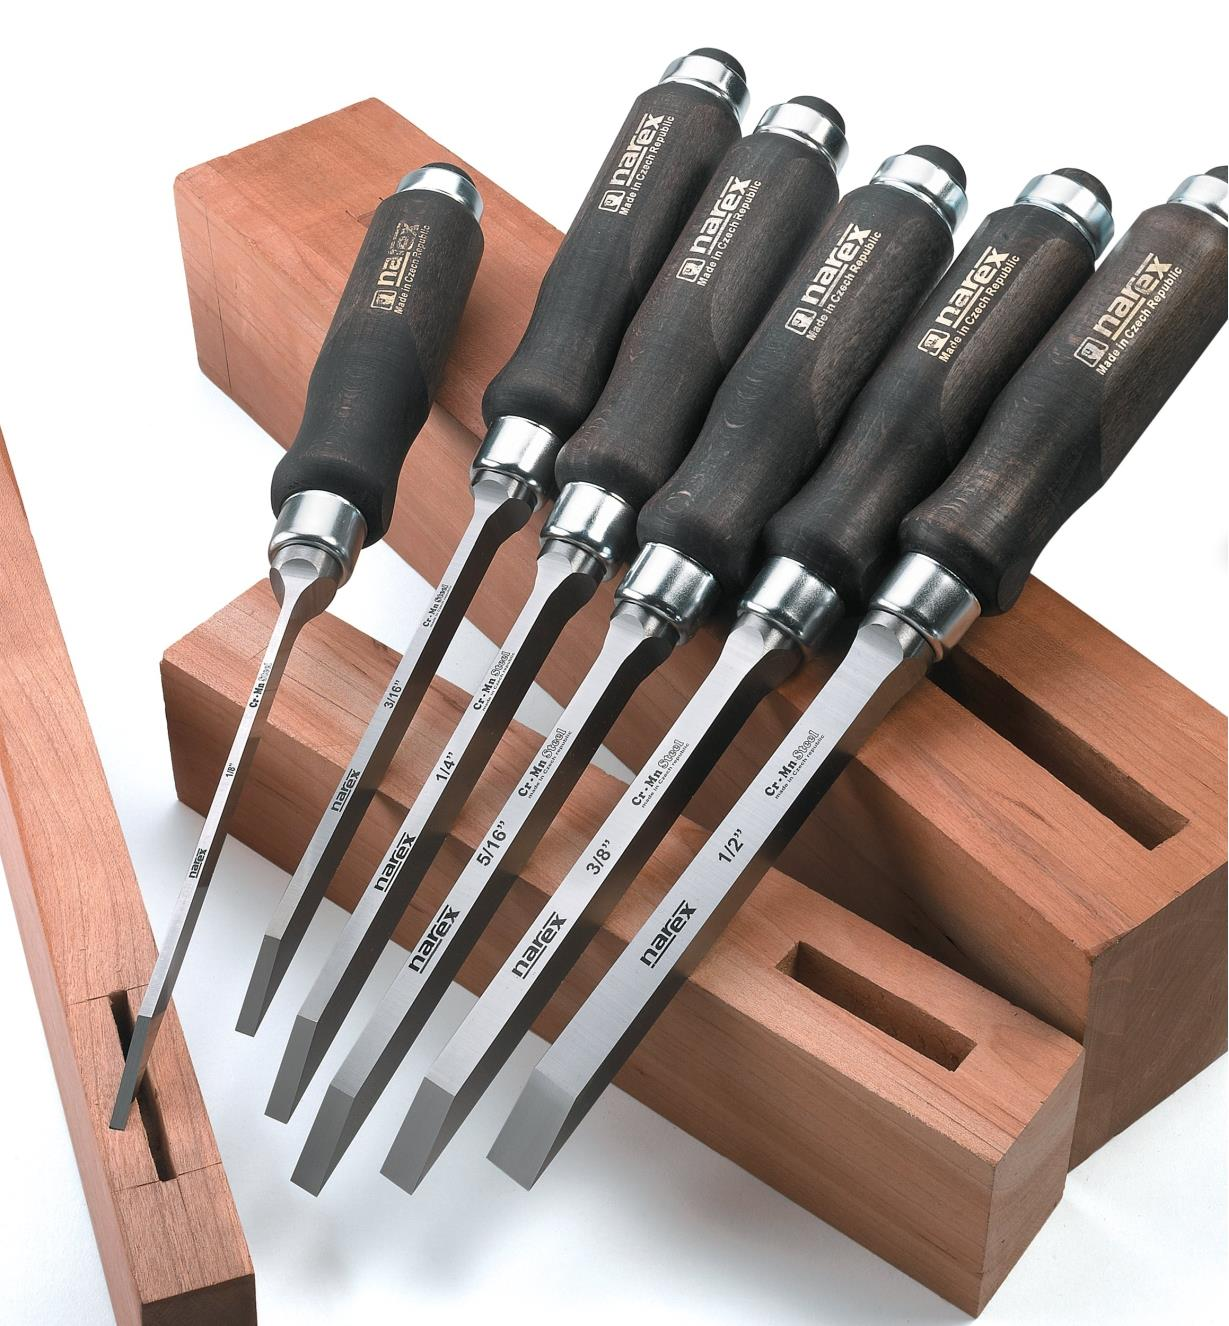 "10S0941 - Narex Mortise Chisels, set of 6 (1/8"" - 1/2"")"